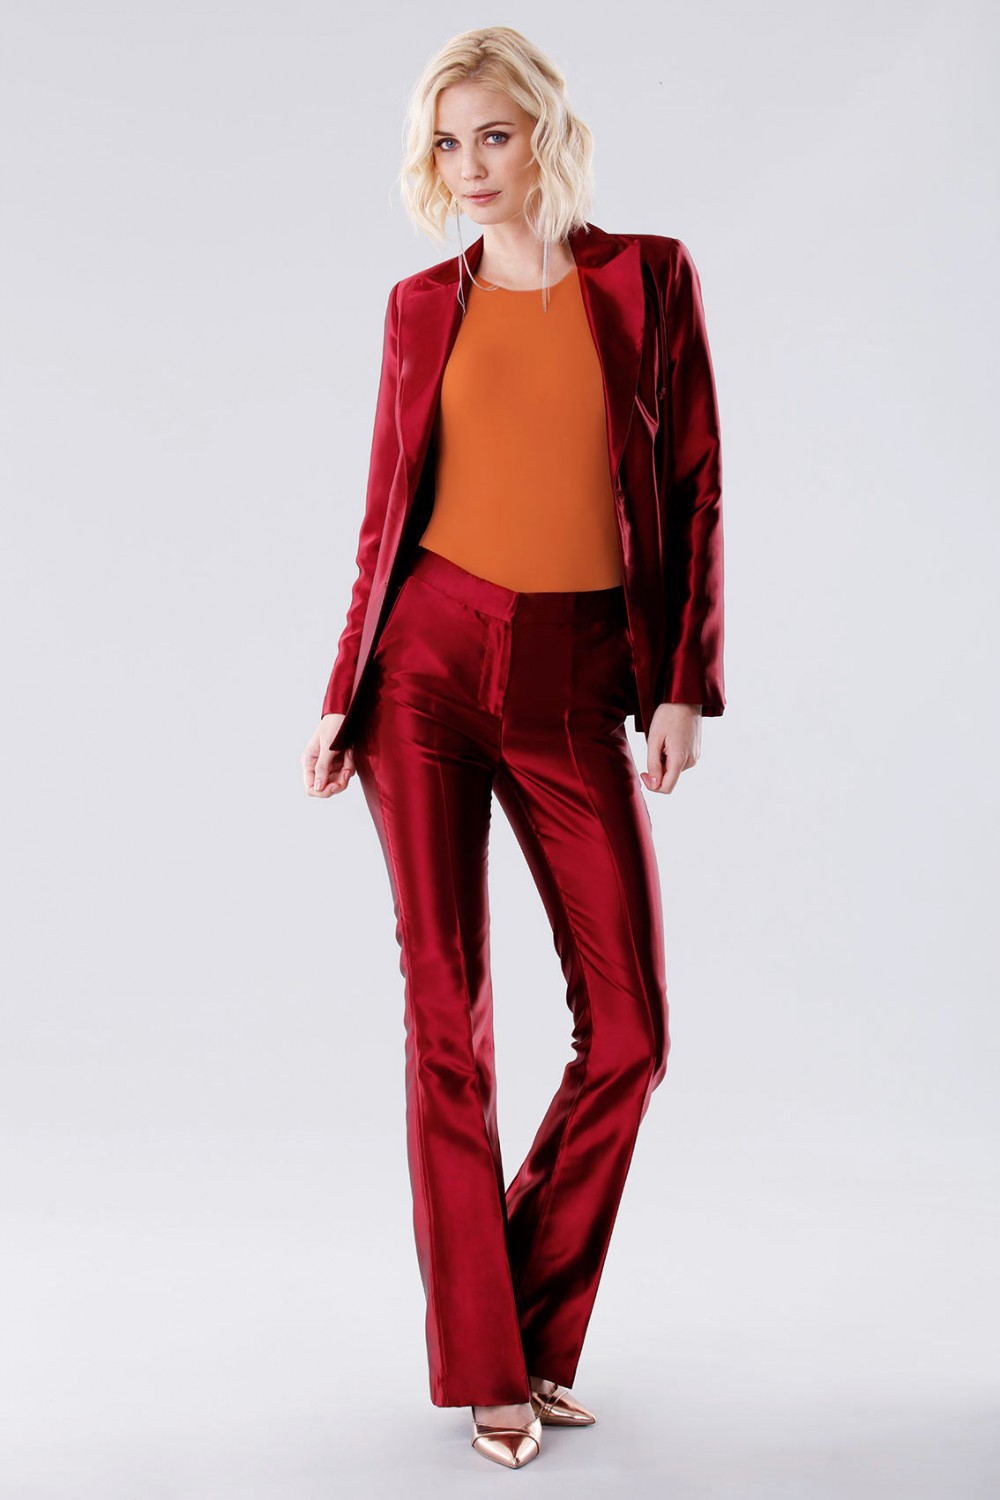 Burgundy satin suit with trousers and double-breasted jacket